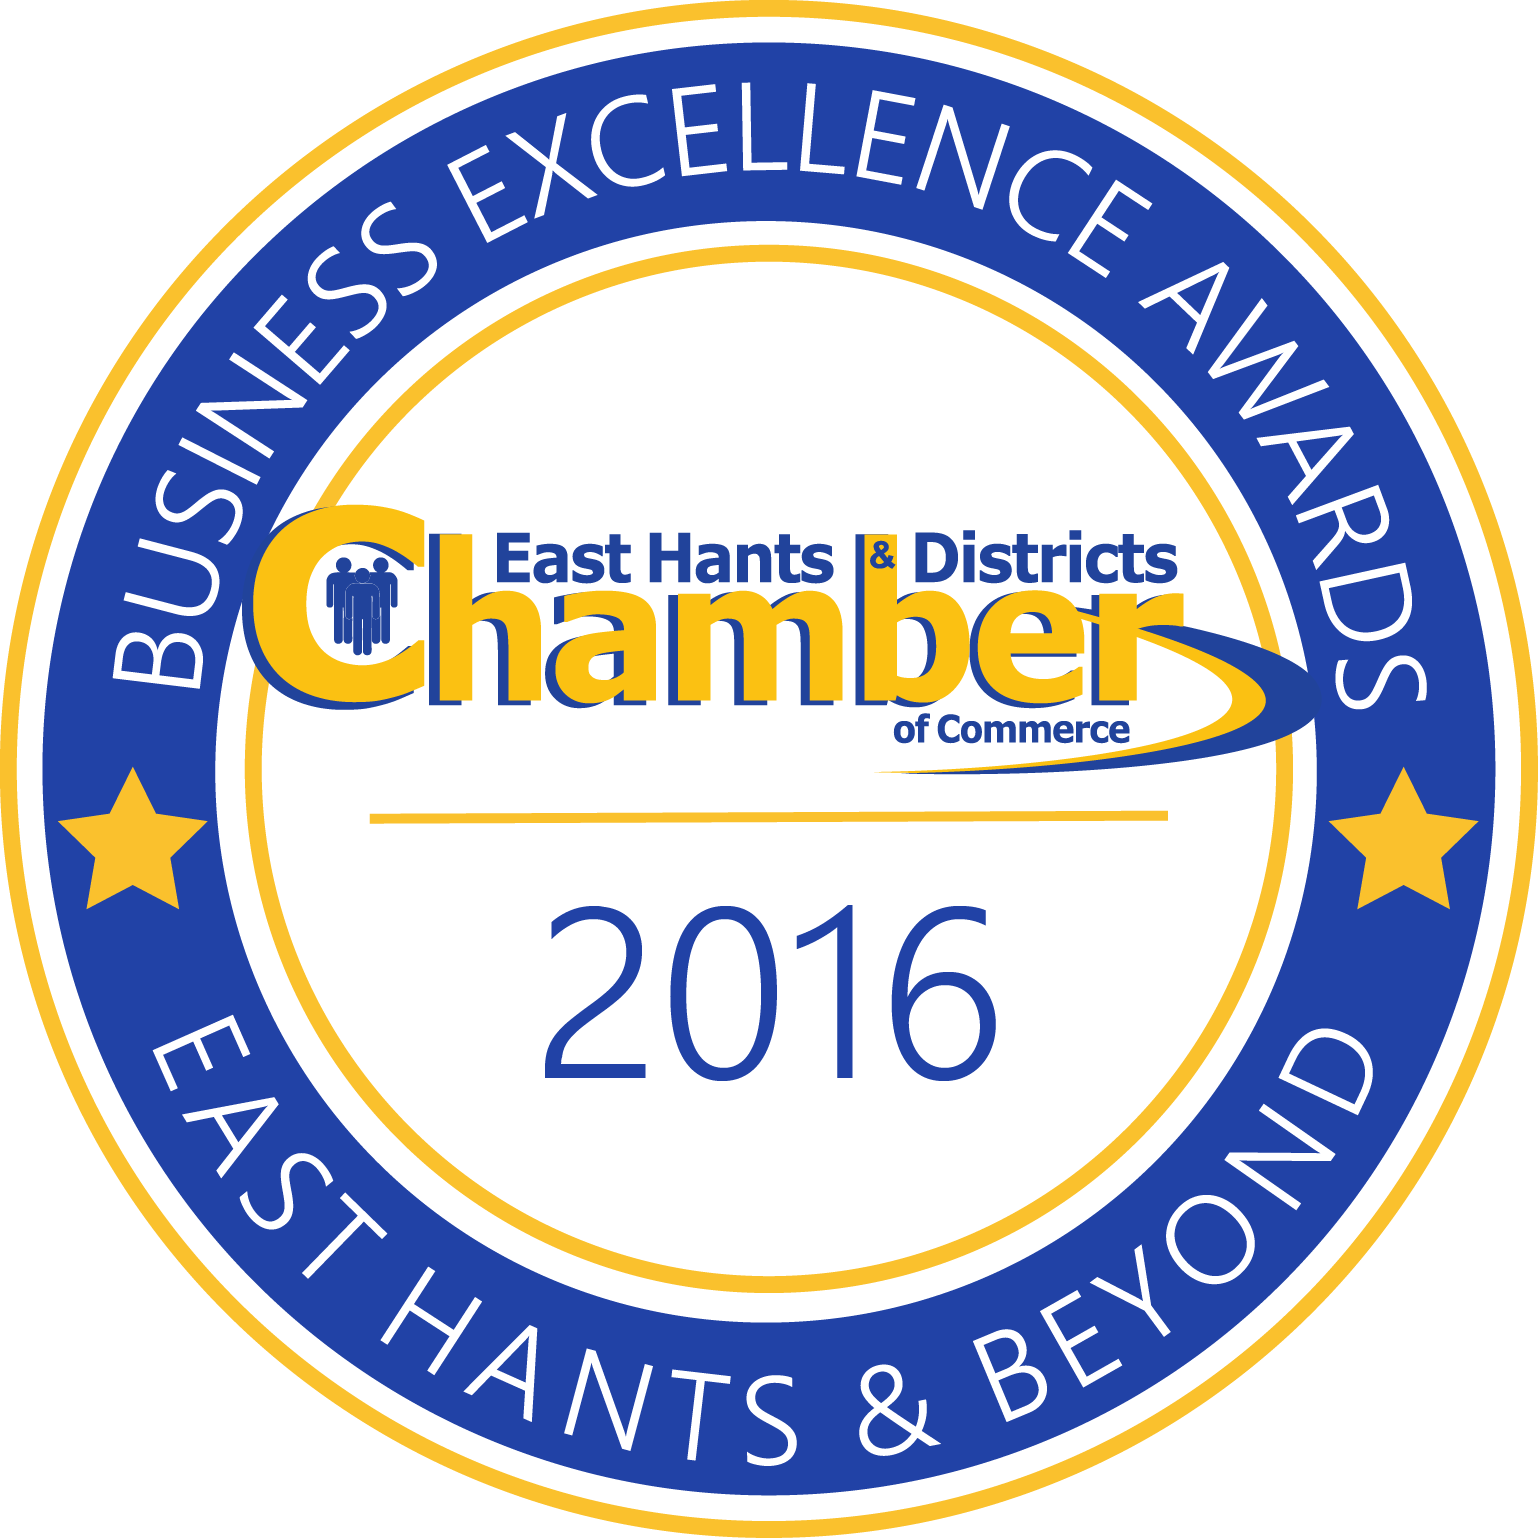 Business Excellence Awards 2016 - East Hants & District